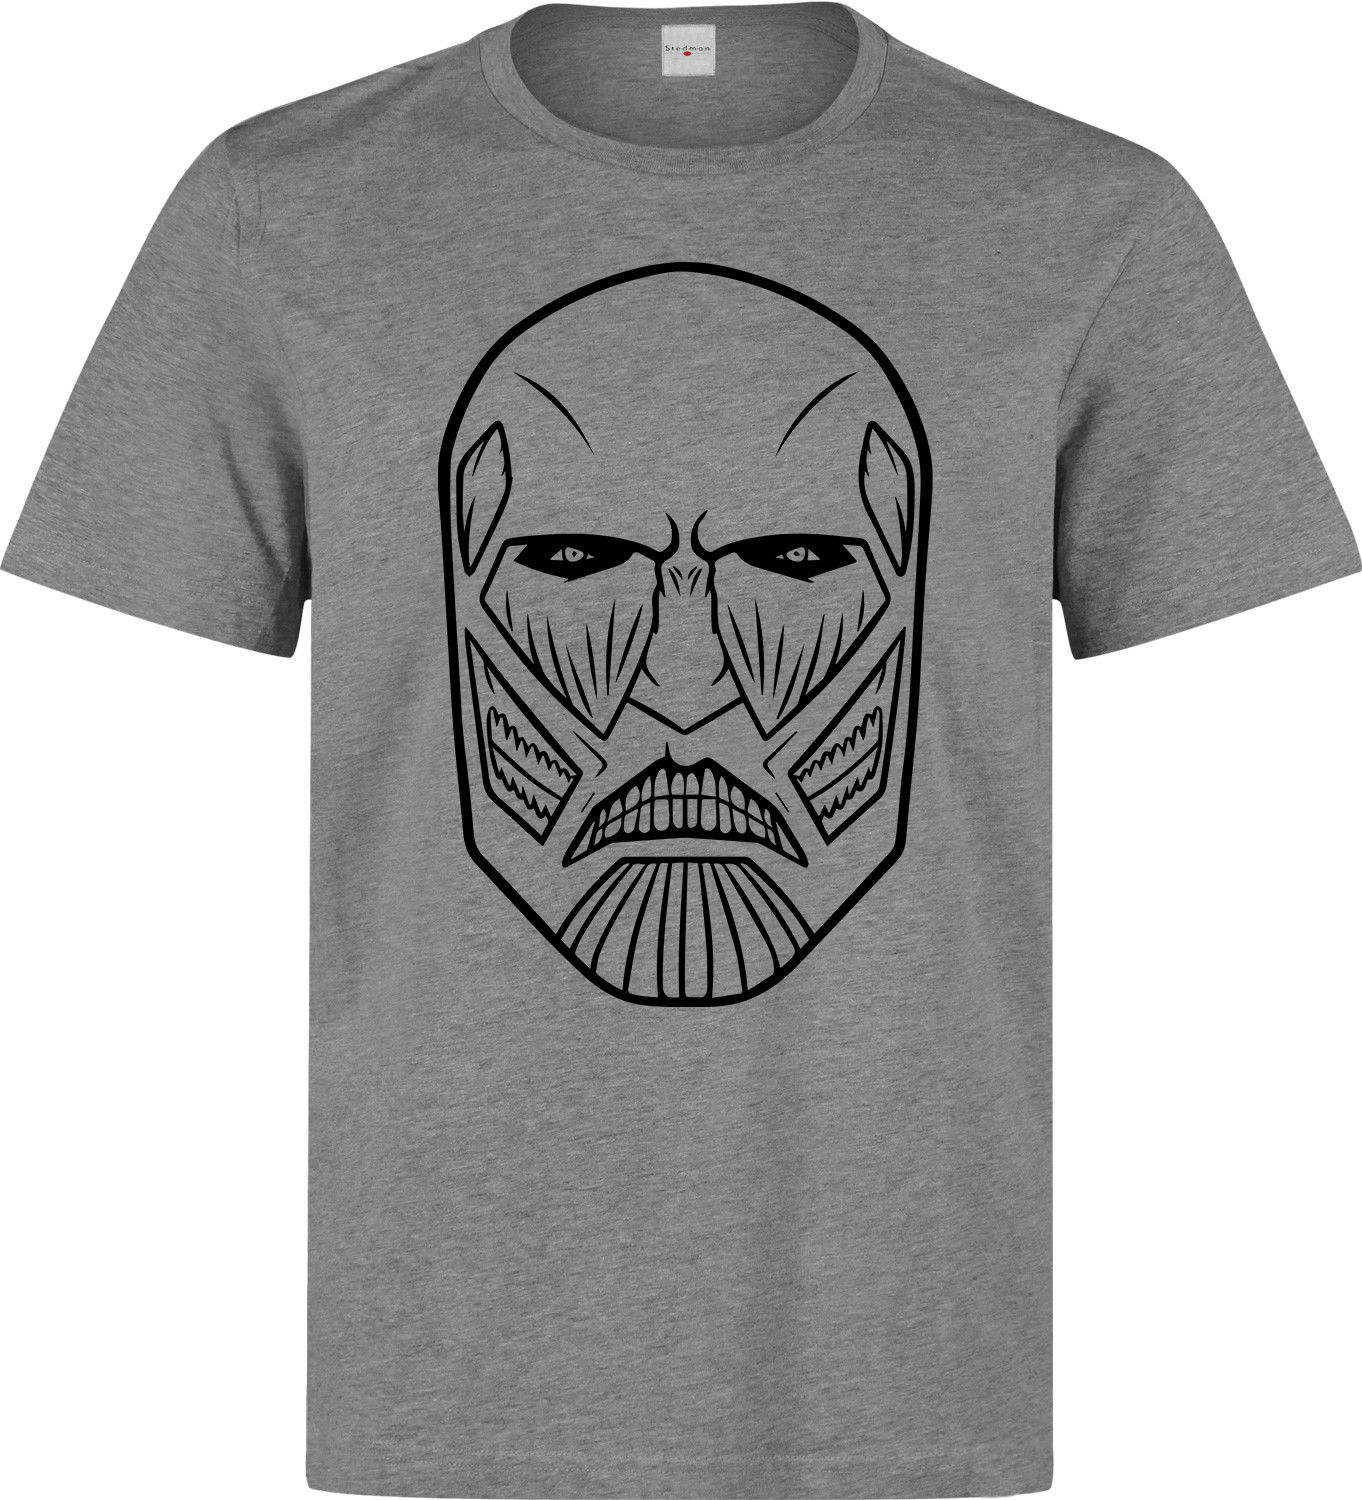 Attack On Titan Colossal Titan Minimal men's (woman's available) grey t shirt 2018 Summer T-Shirts For Men